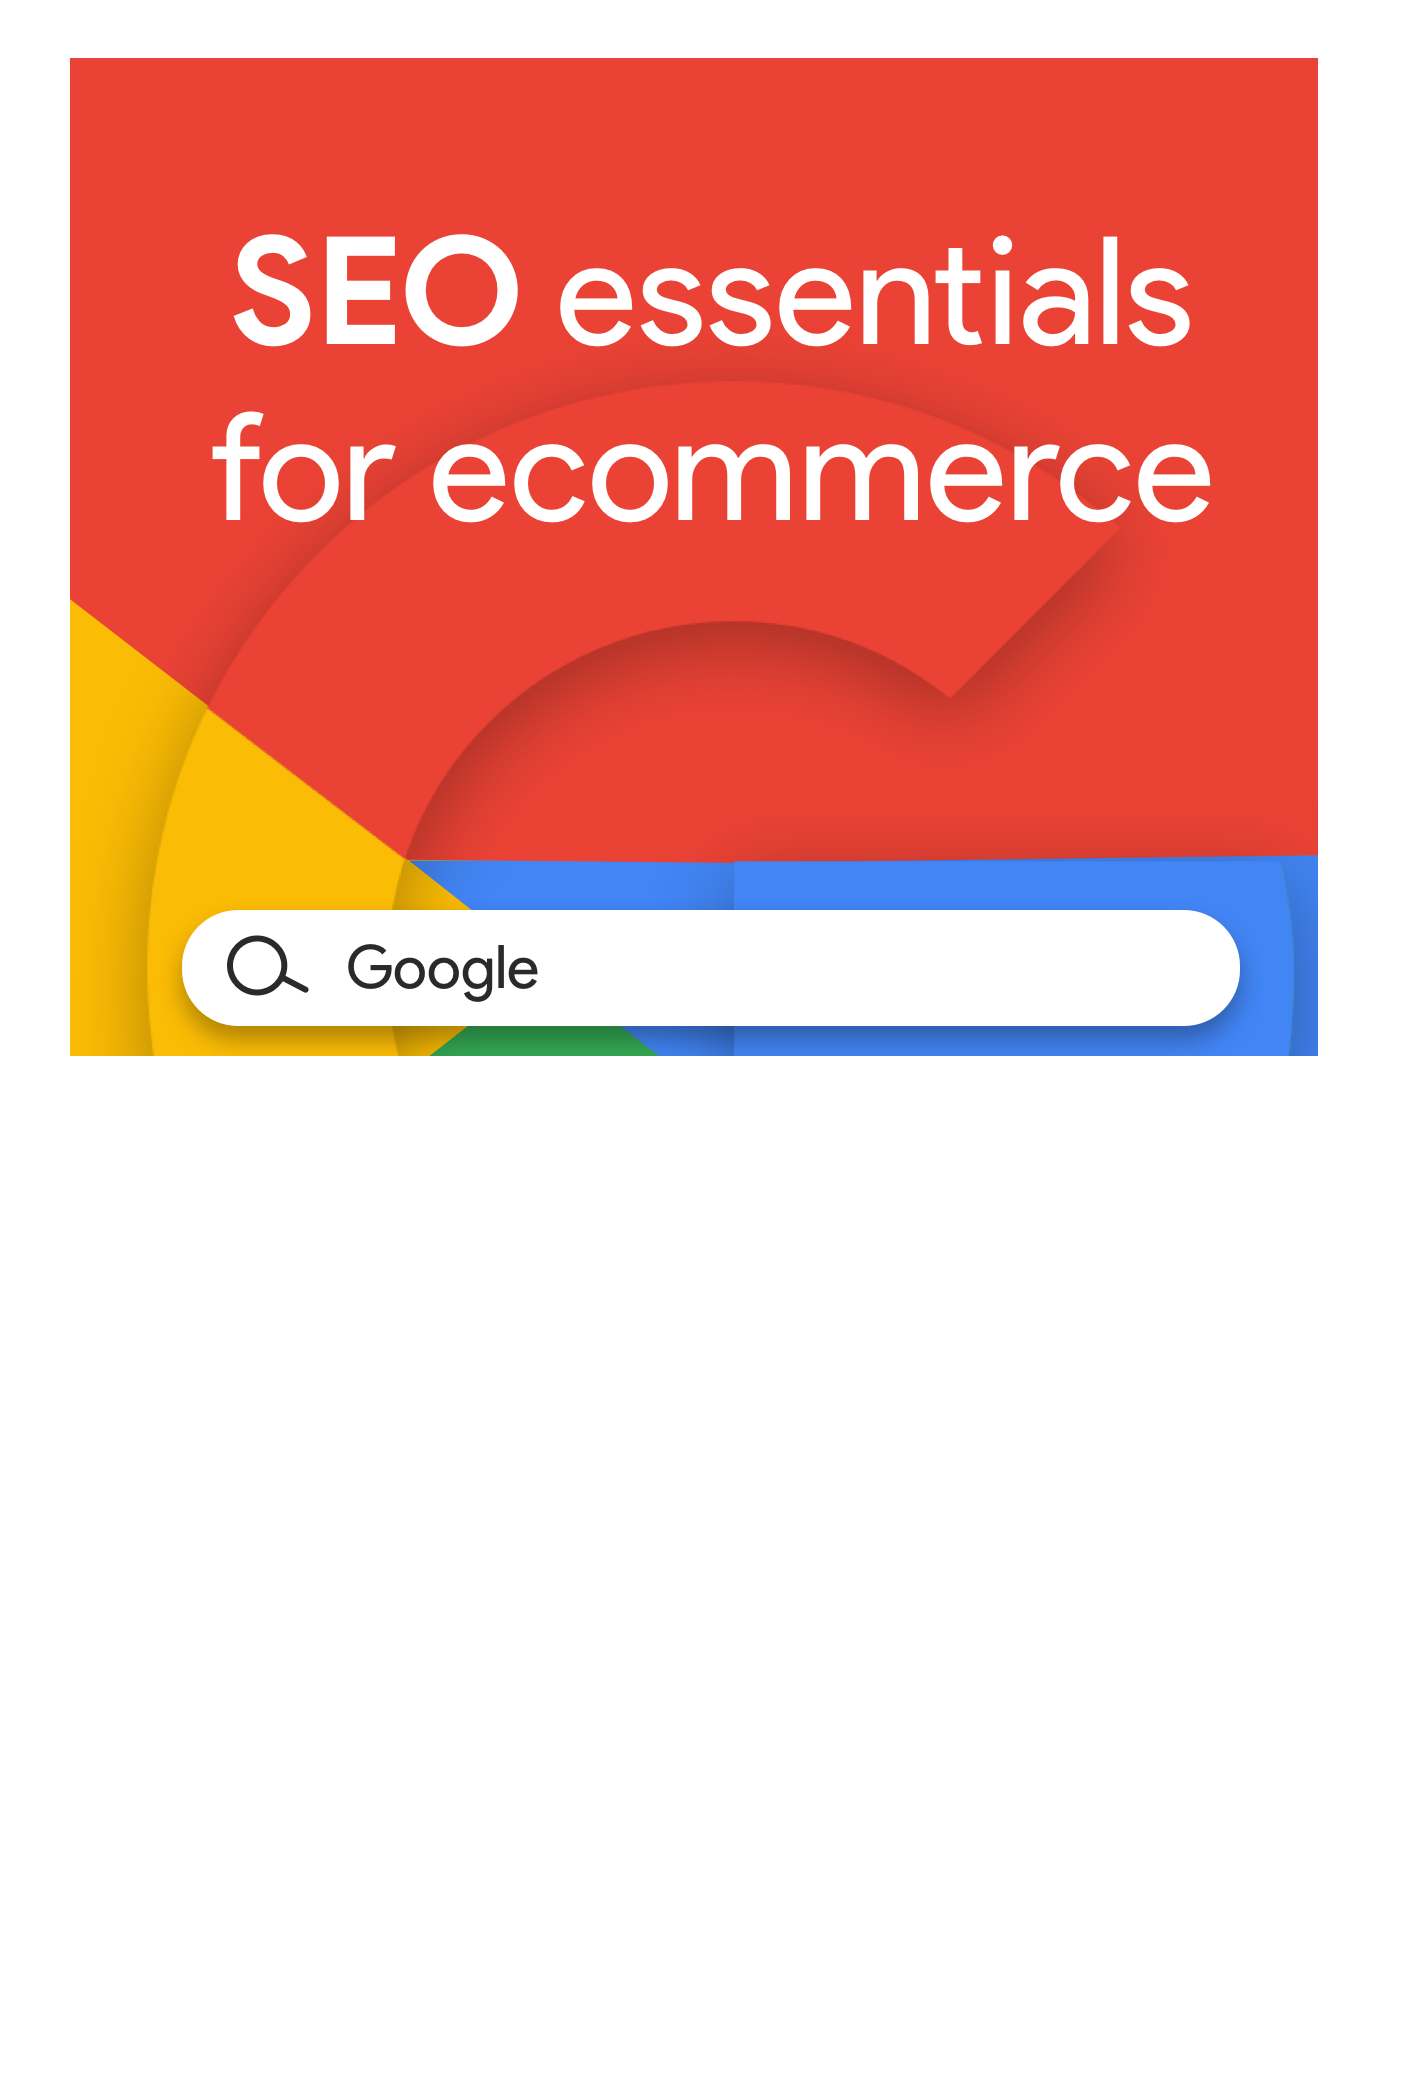 <http://resources.shoplo.com/download/seo-essentials-for-ecommerce>  SEO Essentials for Ecommerce  Rank higher in search engines Download ebook  <http://resources.shoplo.com/download/seo-essentials-for-ecommerce>